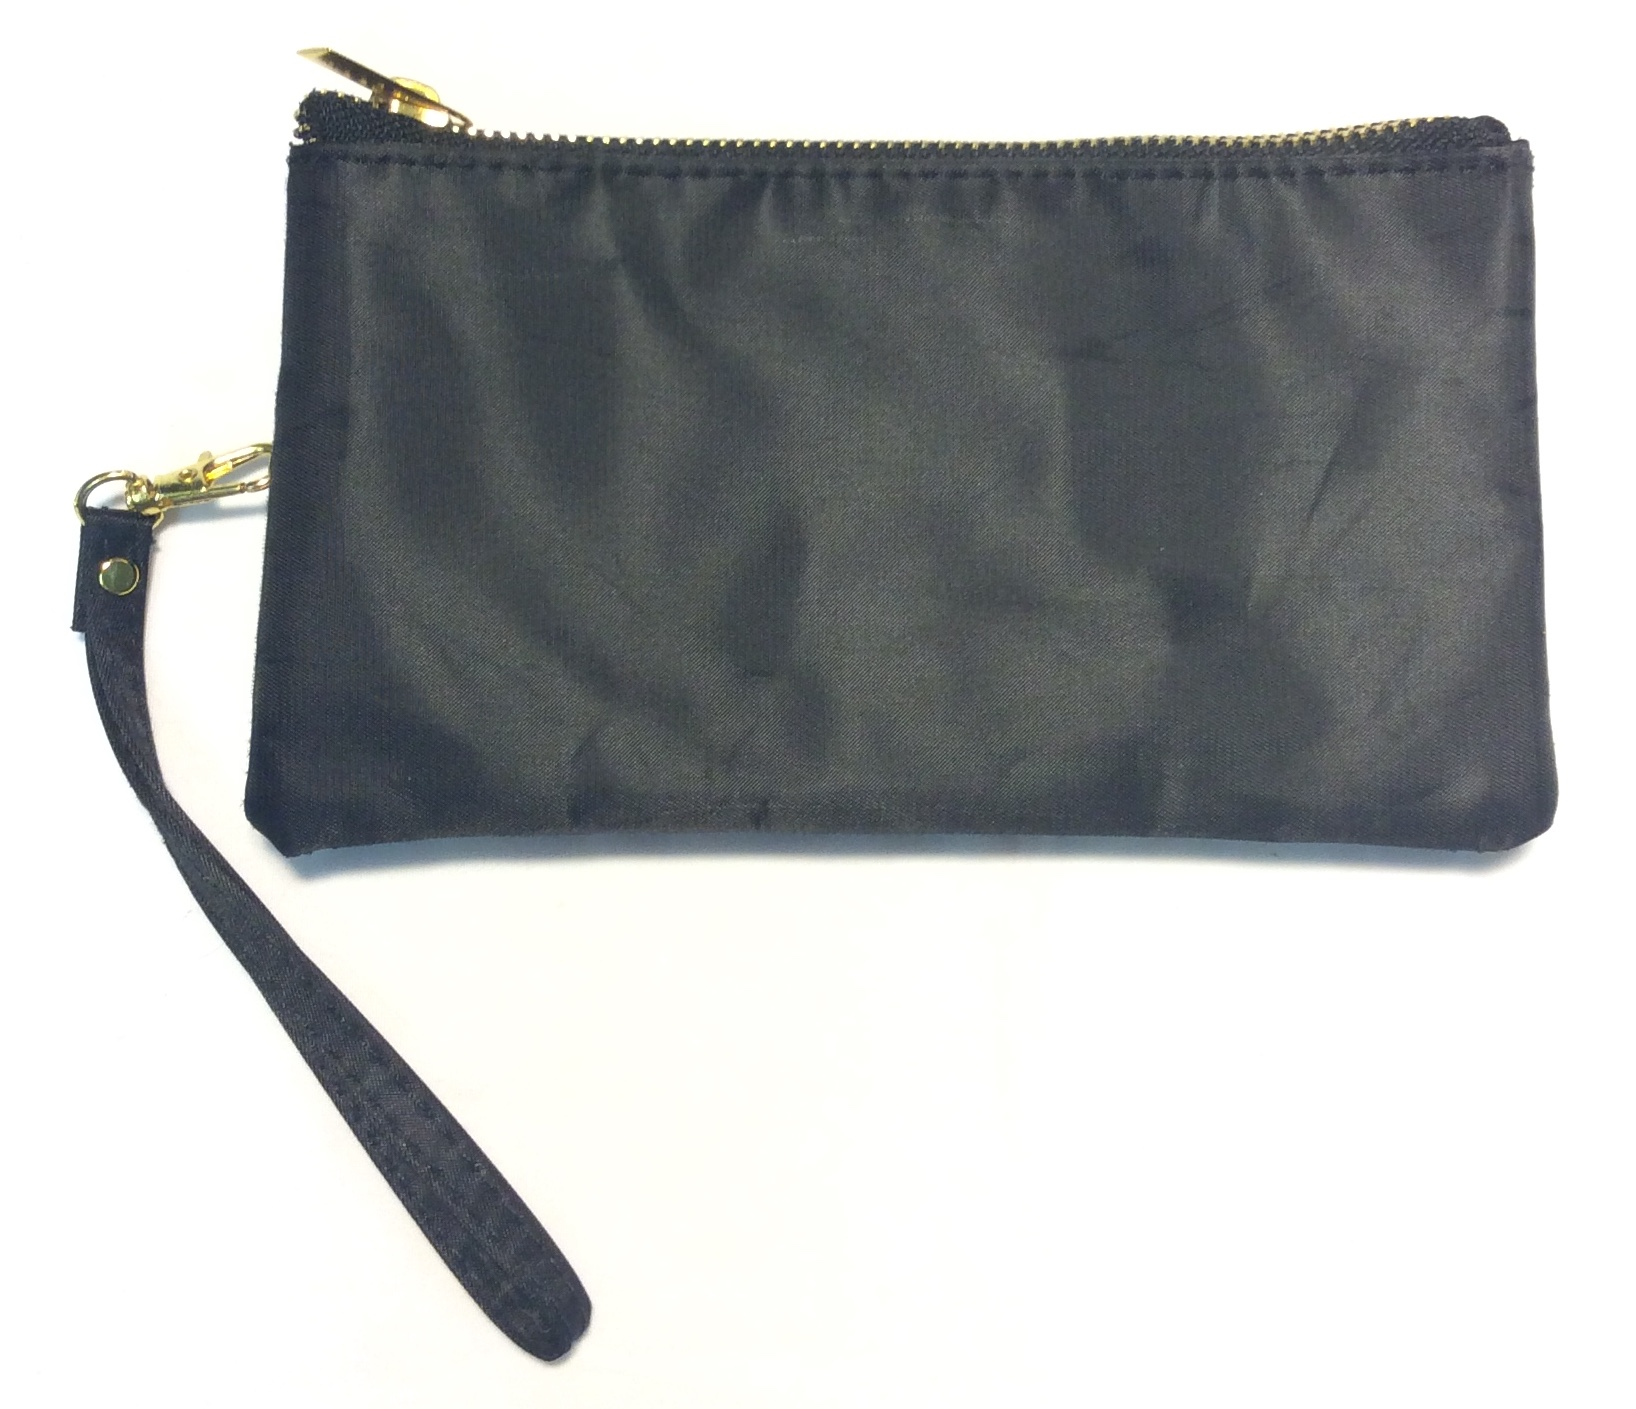 Black fabric wallet with gold zipper